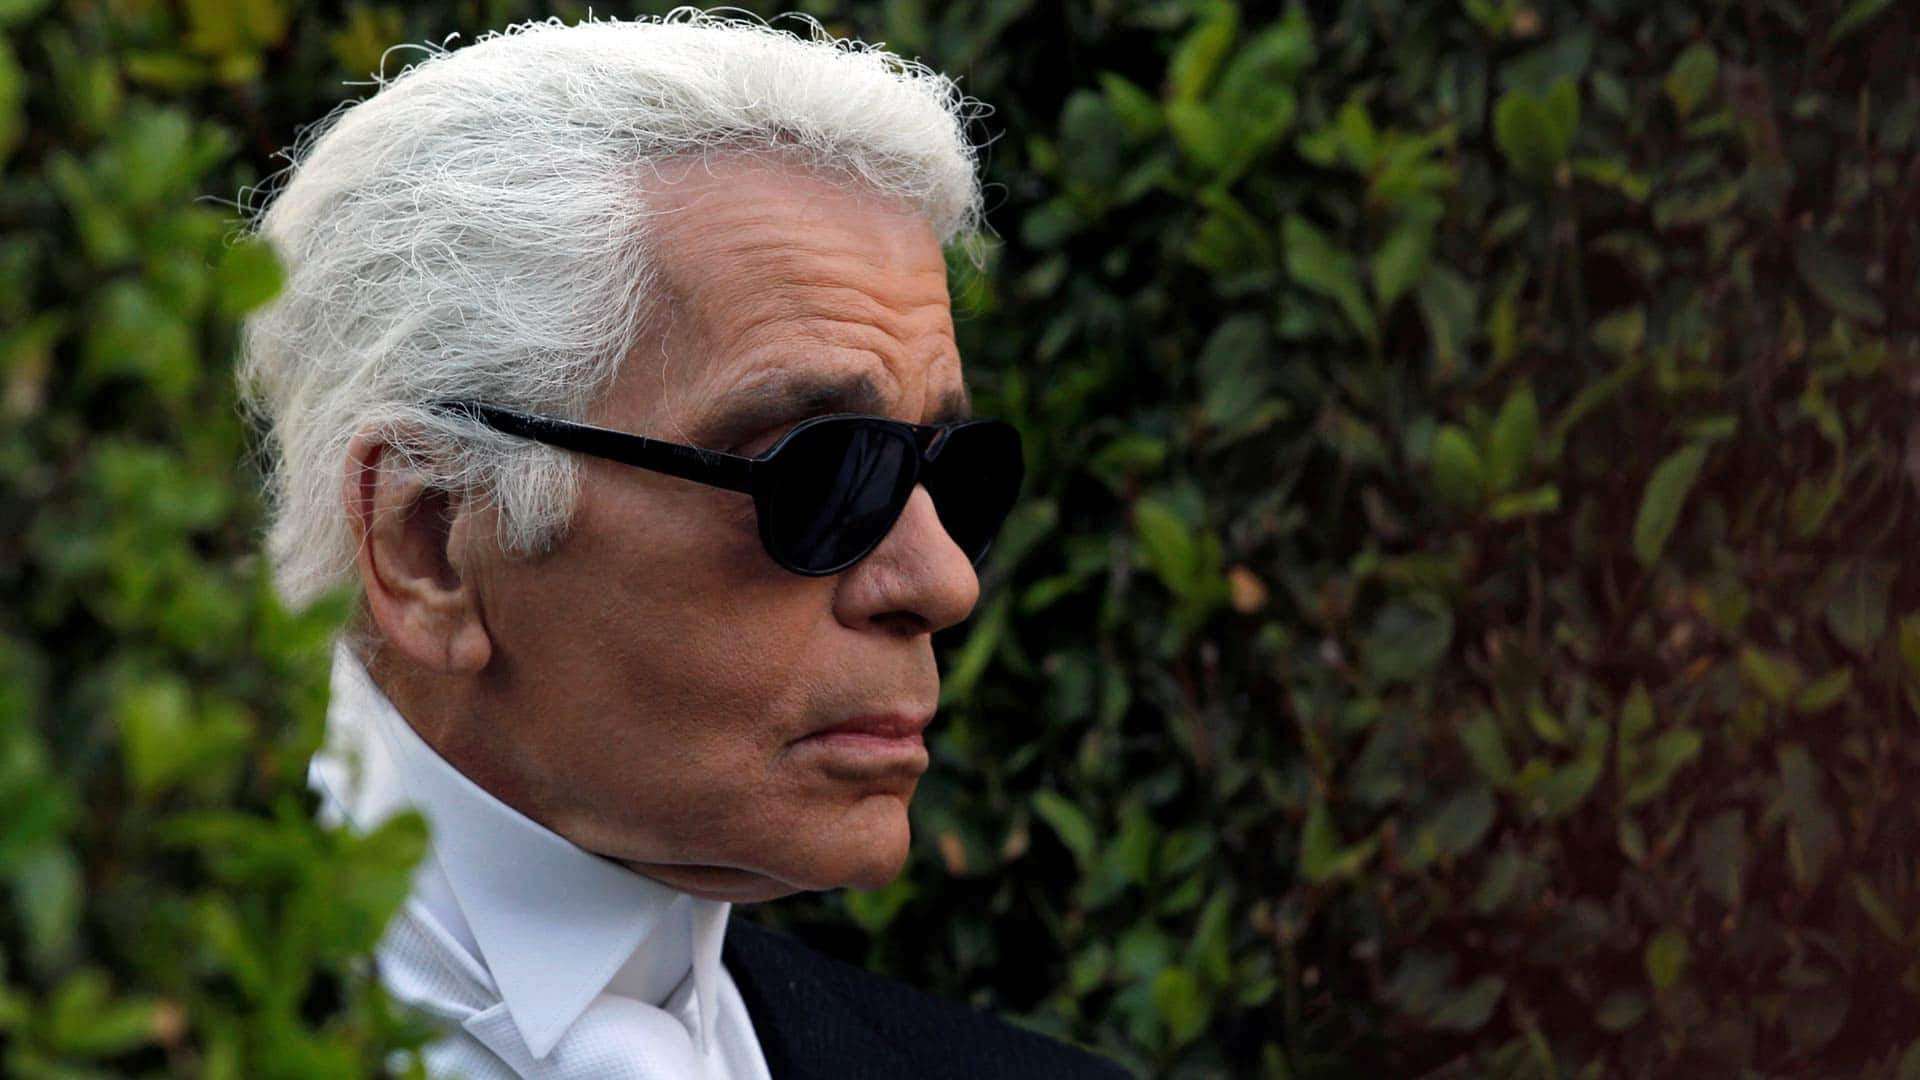 What Karl Lagerfeld Taught Canadian Fashion Designers Cbc News